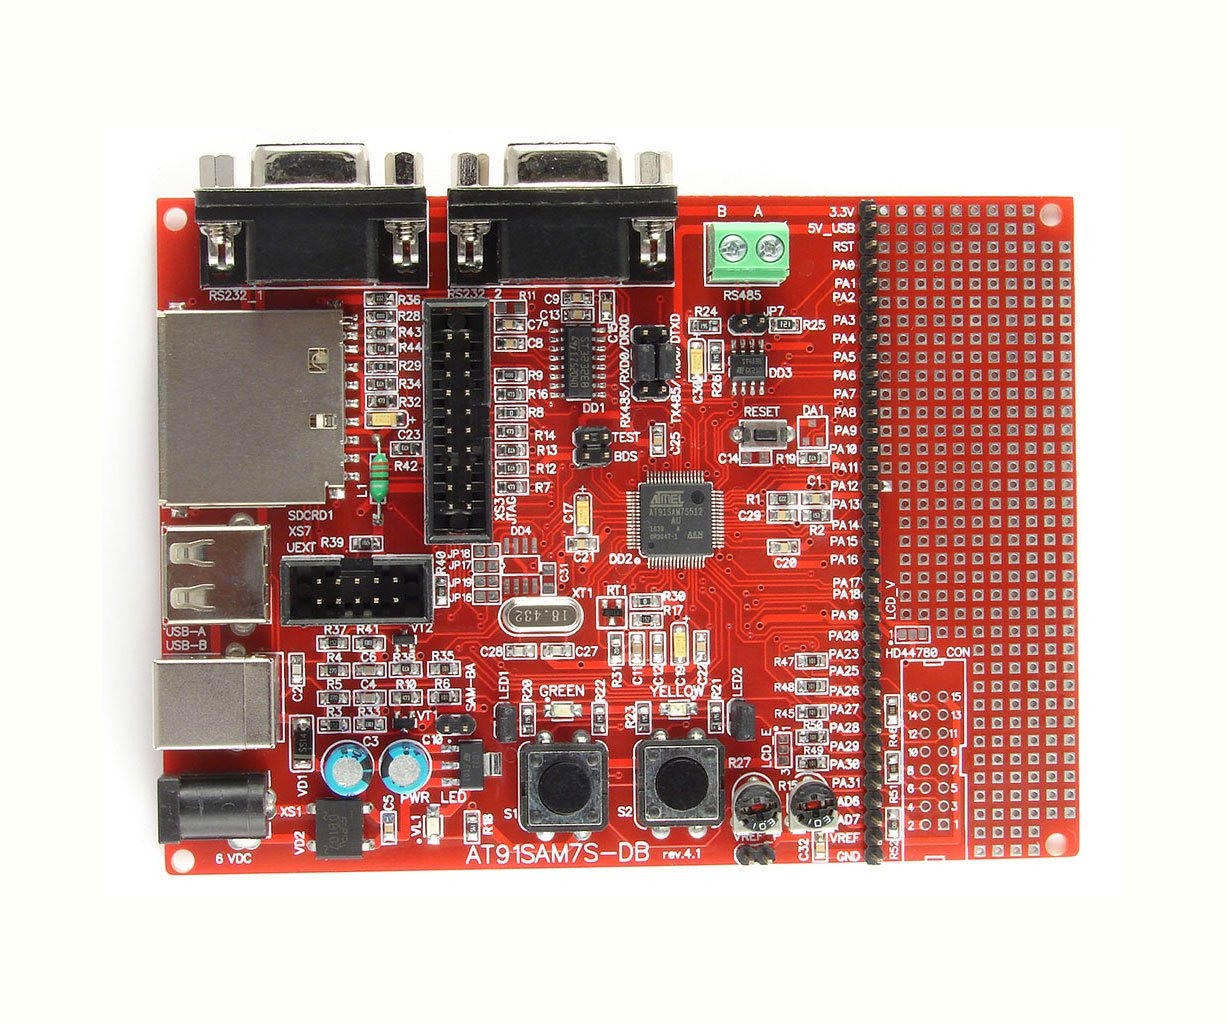 ATMEL AT91SAM7S128 ARM7 board: JTAG, SD card slot, USB, 2xRS232, 1xRS485